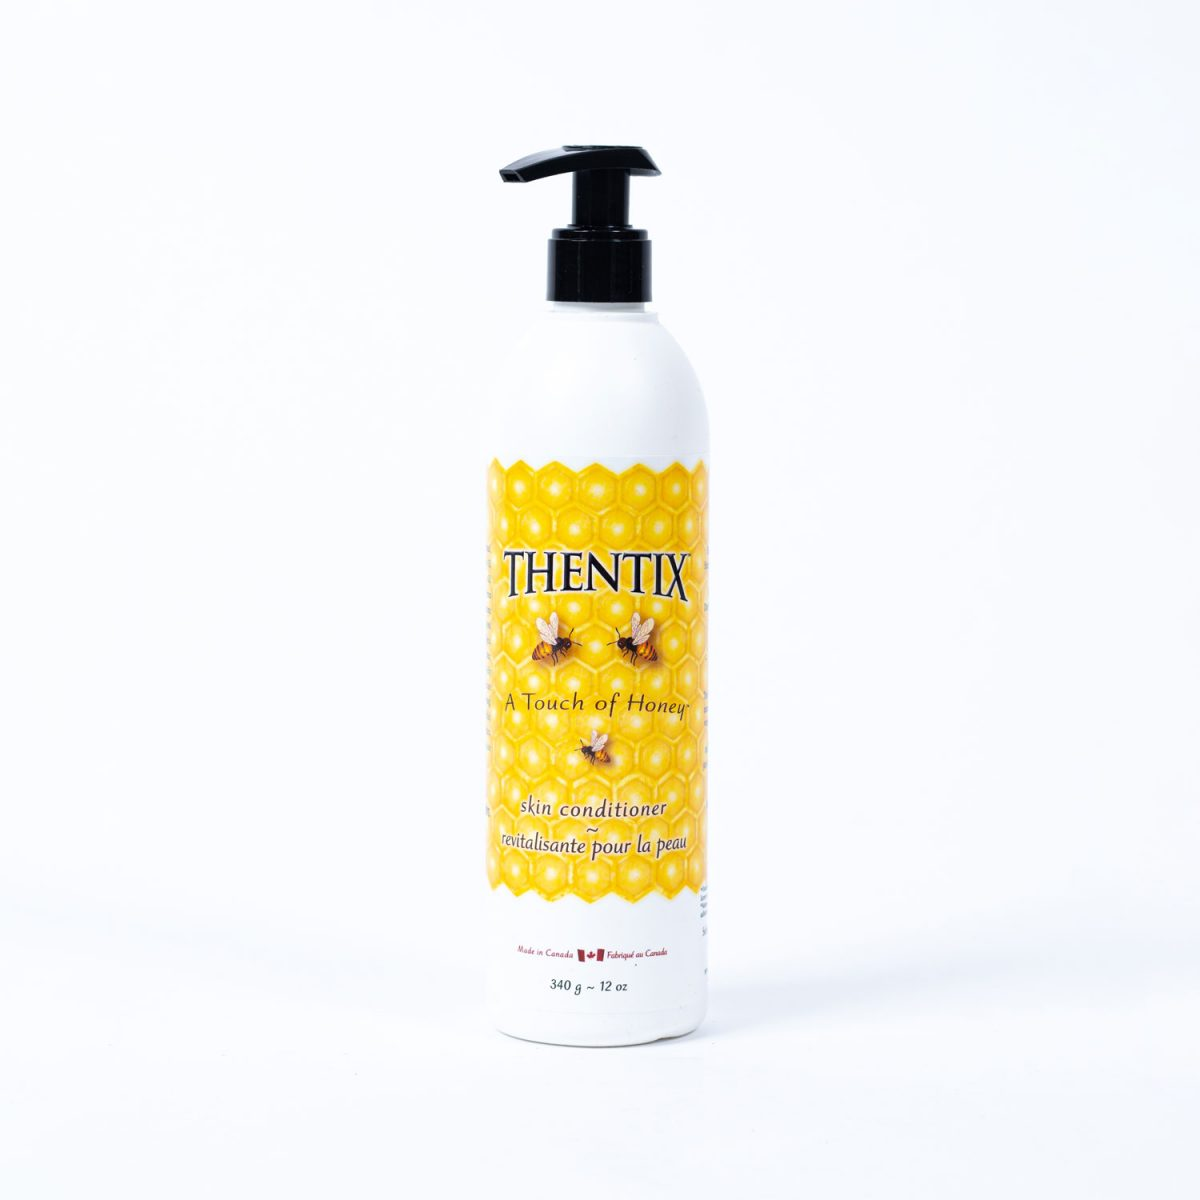 Thentix skin conditioner 12oz